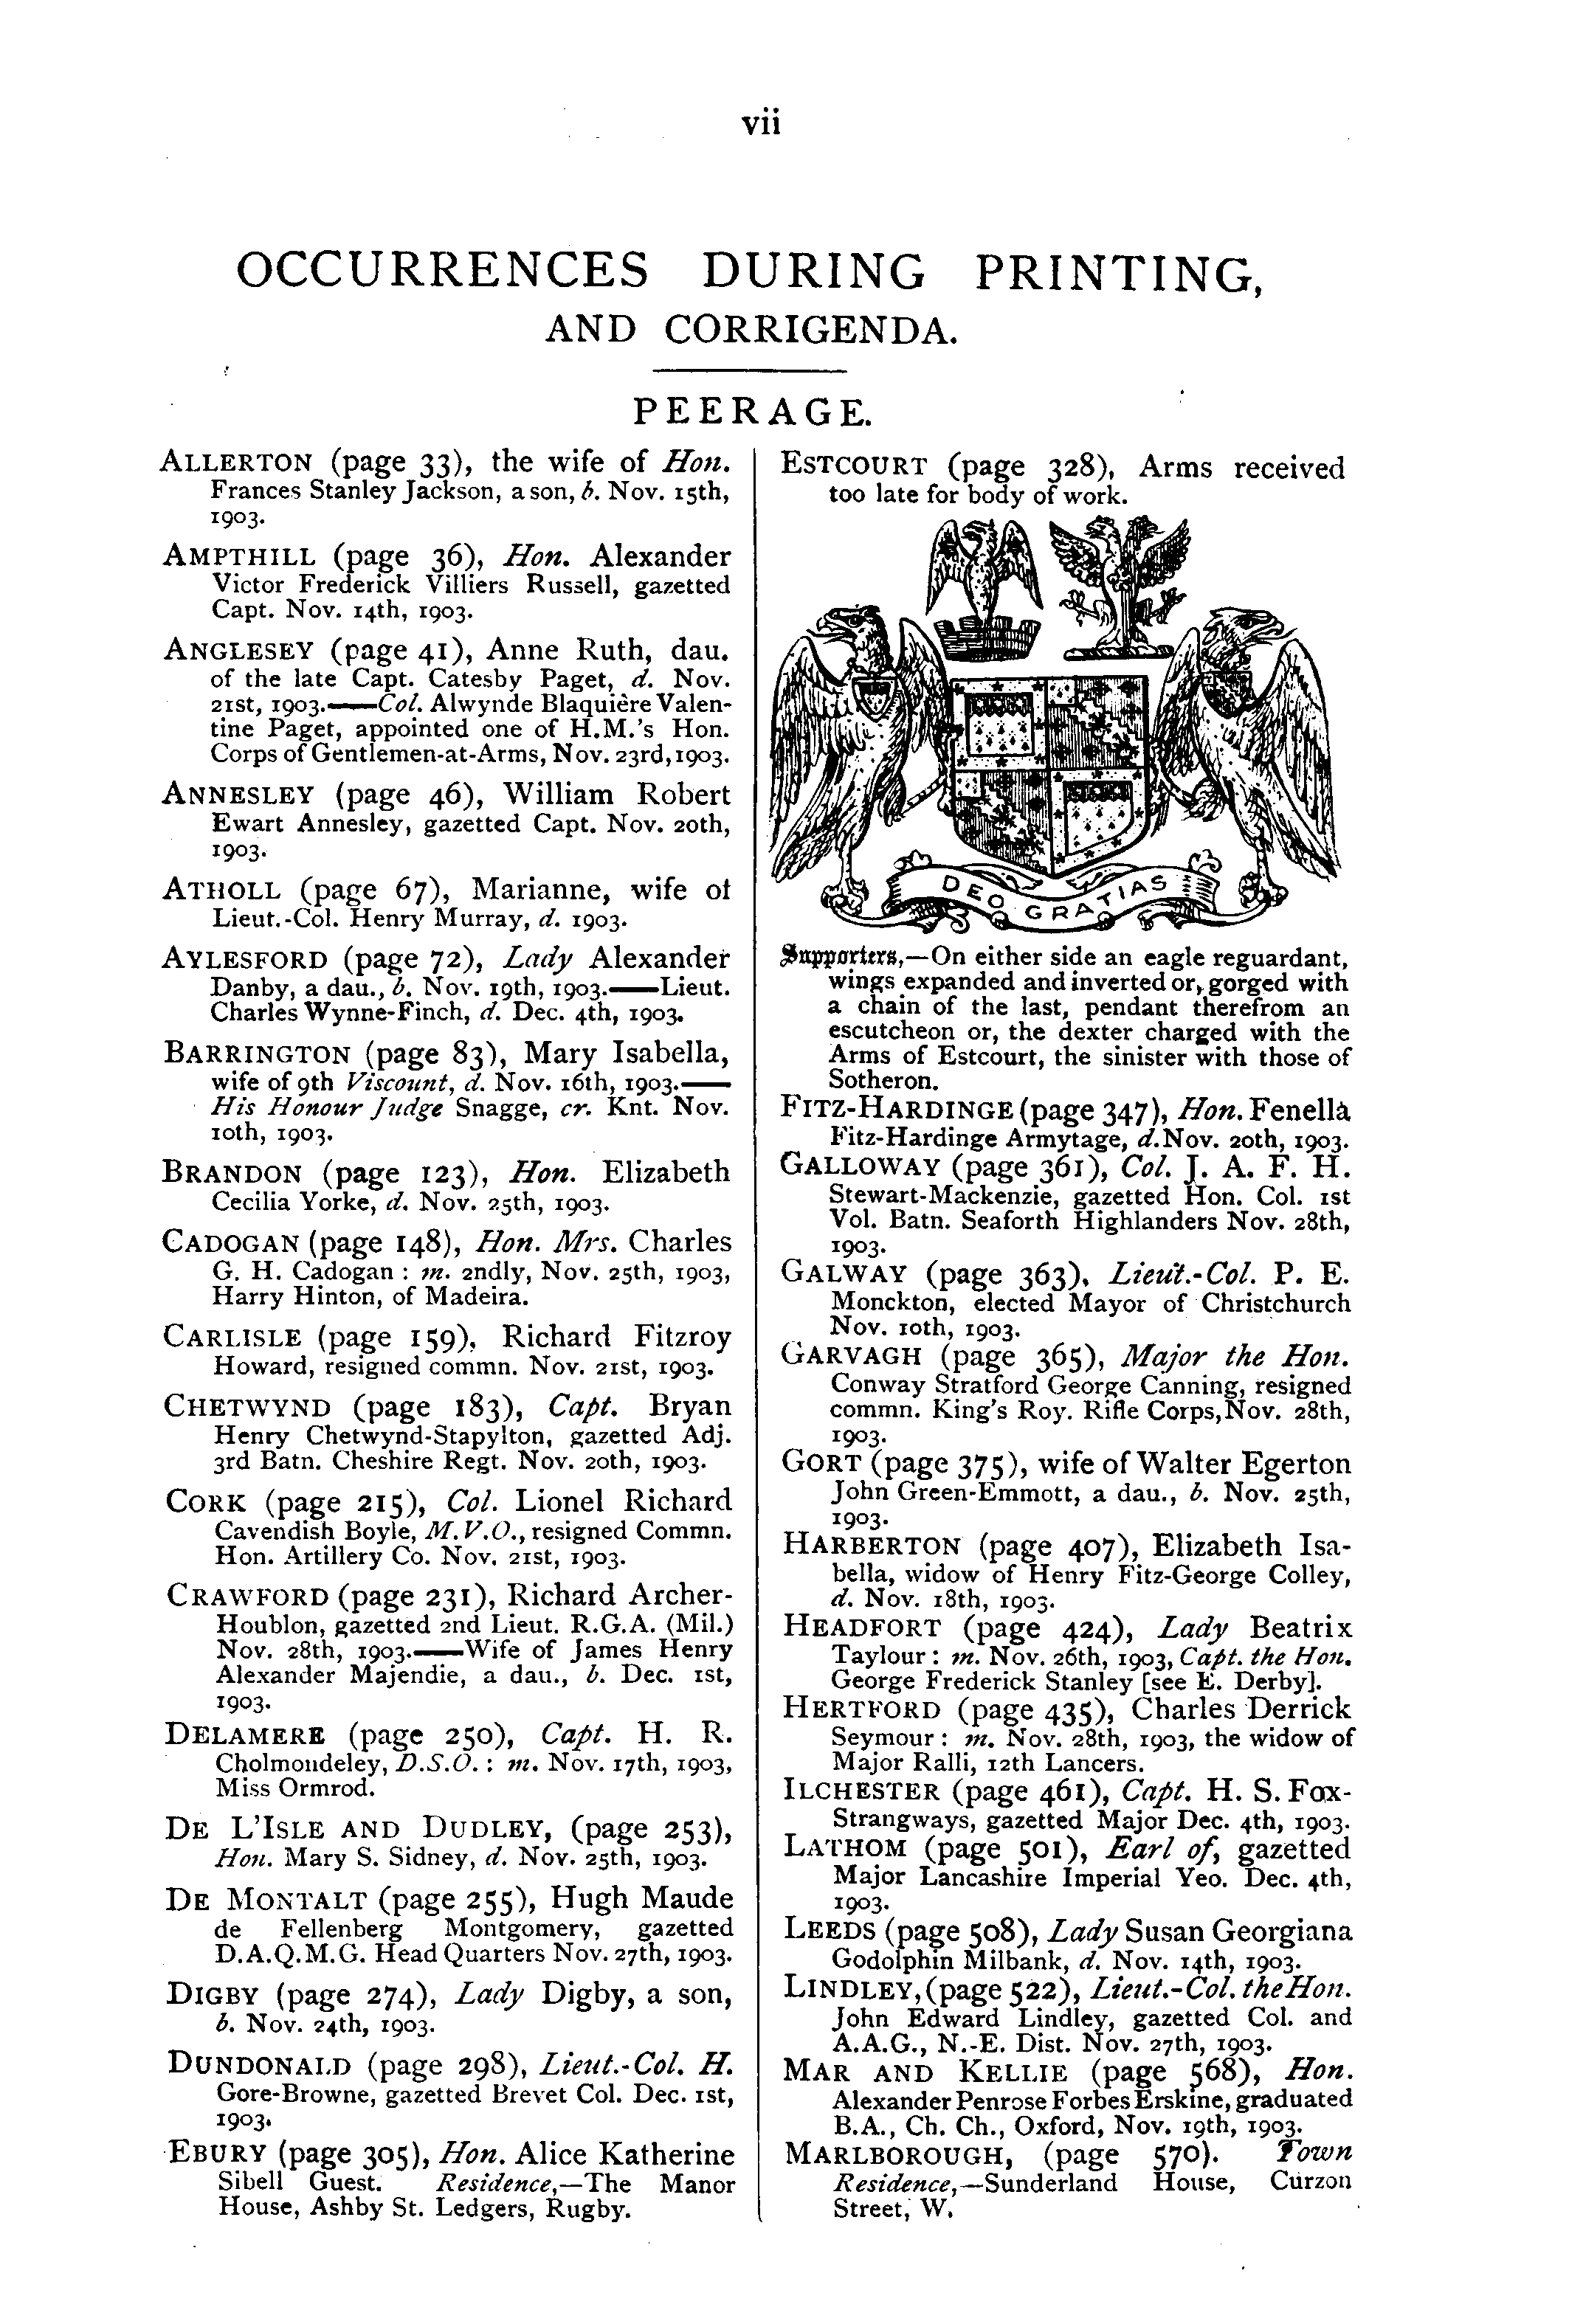 Debrett's Peerage, Baronetage, Knightage and Companionage, 1904 page vii - click to open larger version in a new window